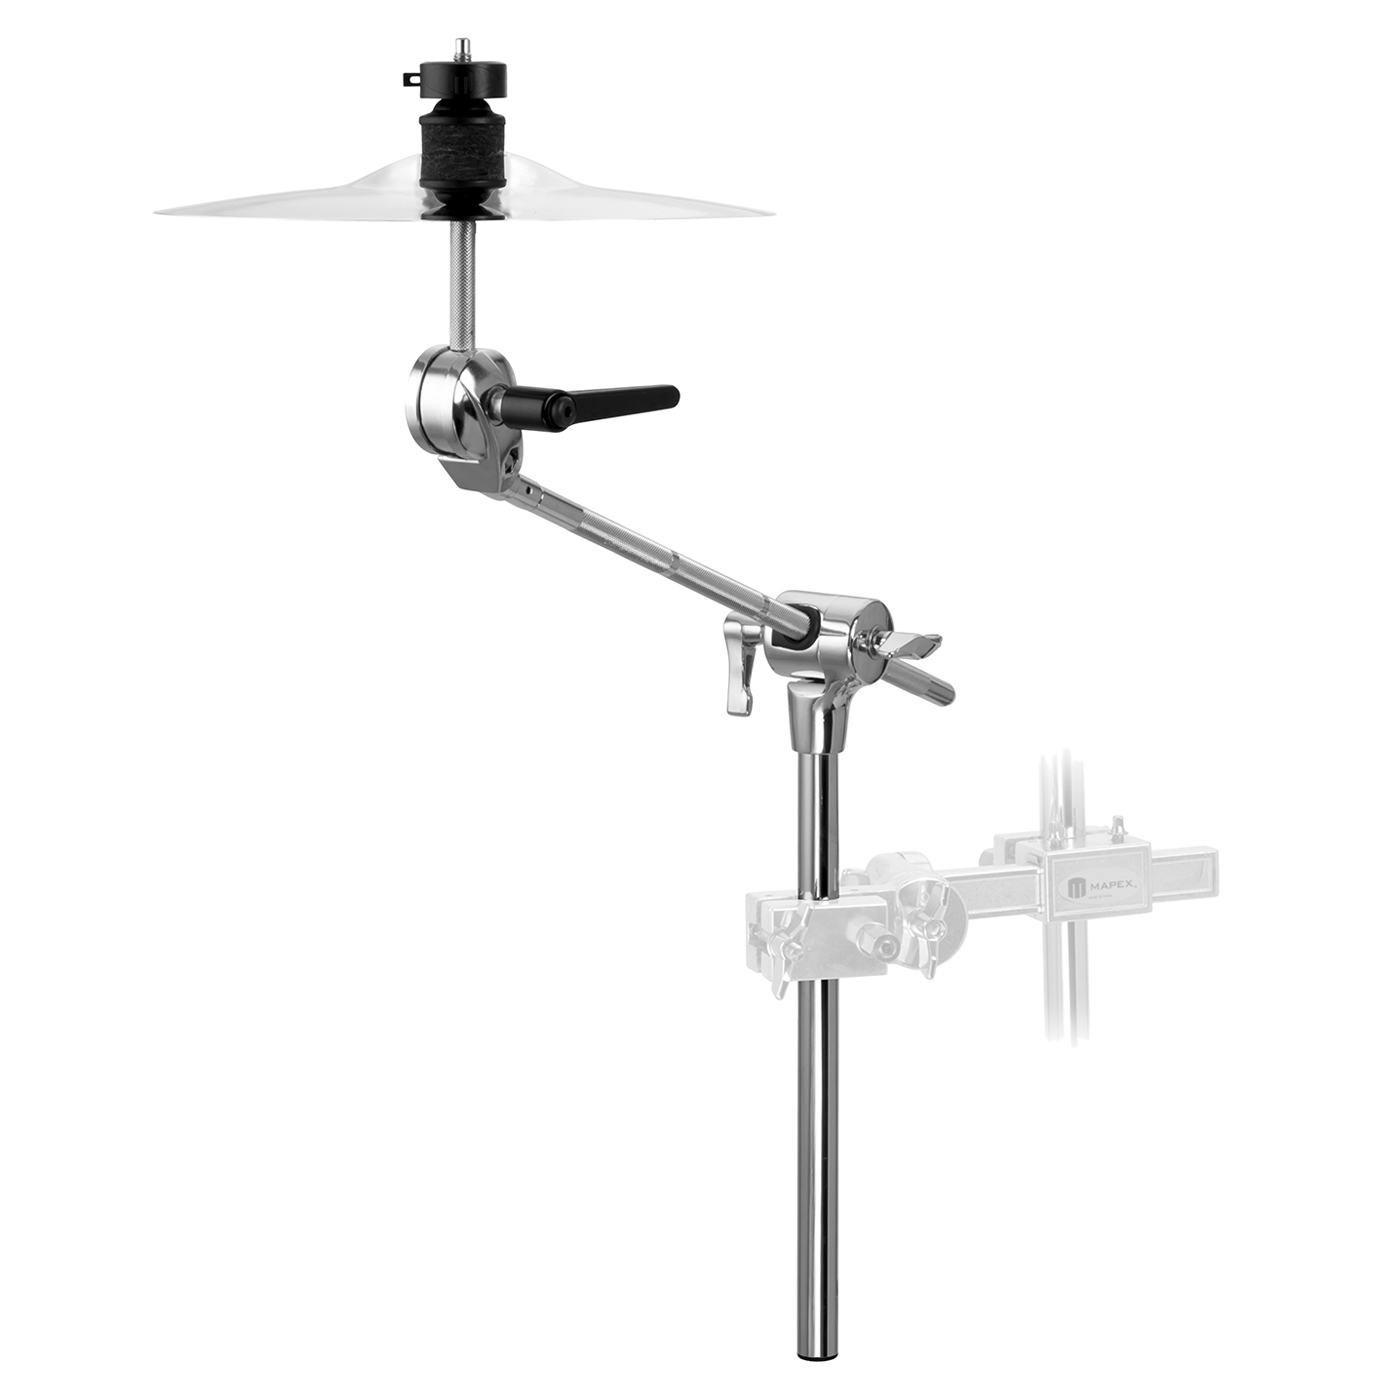 Mapex Armory 800 Series Hideaway Cymbal Boom Arm in Chrome